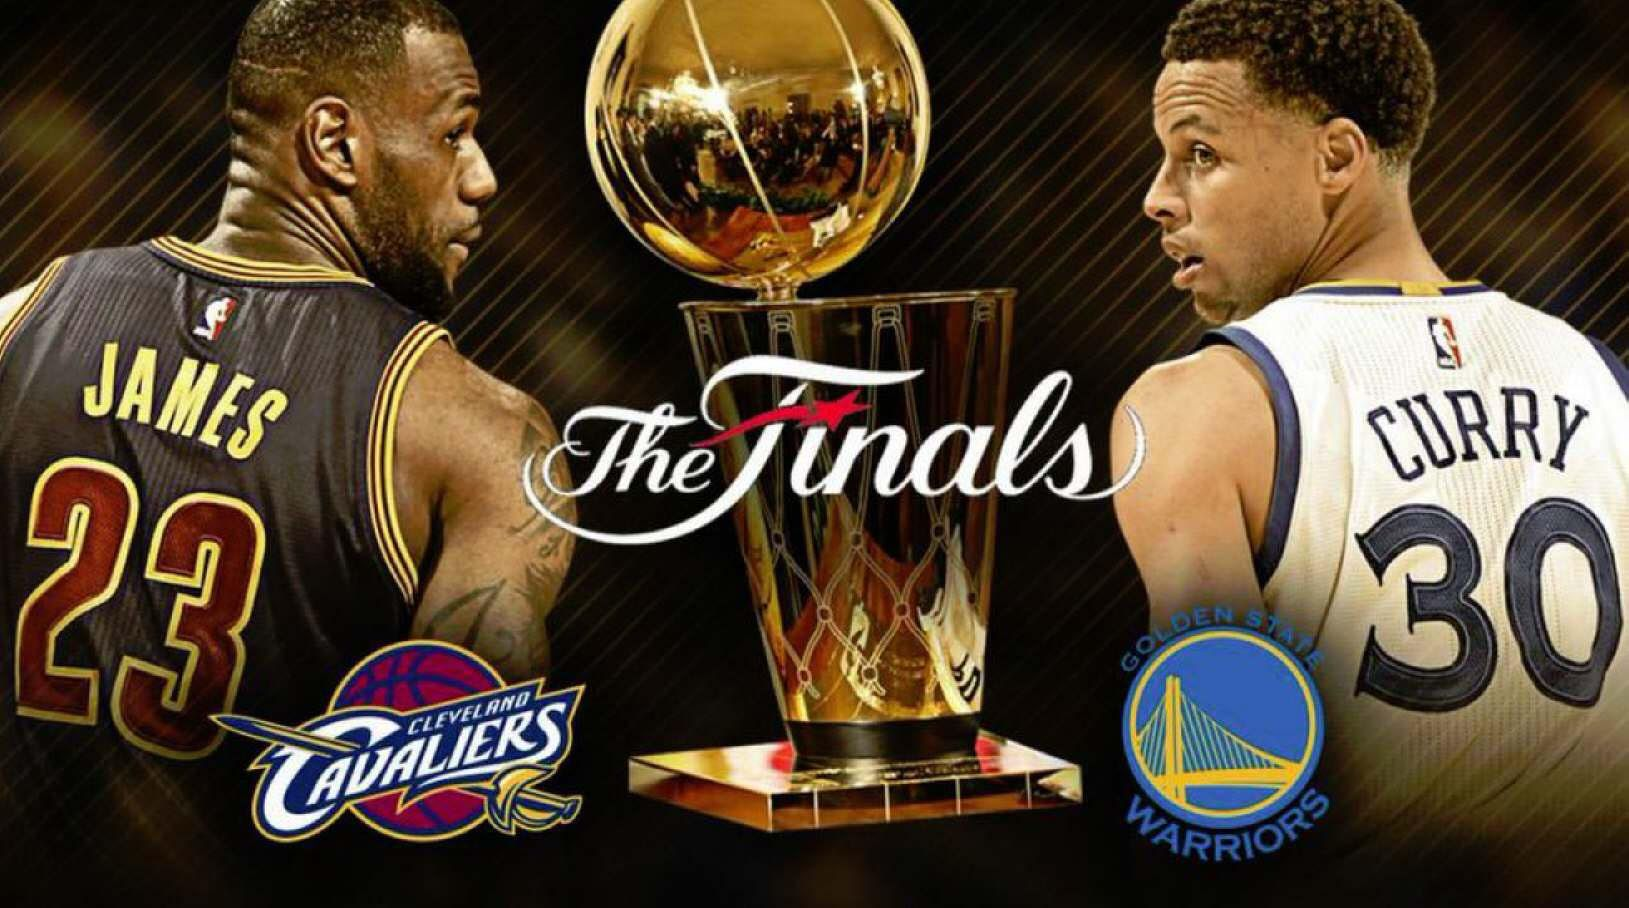 Nba Finals 2015 Game 6 Ratings | All Basketball Scores Info